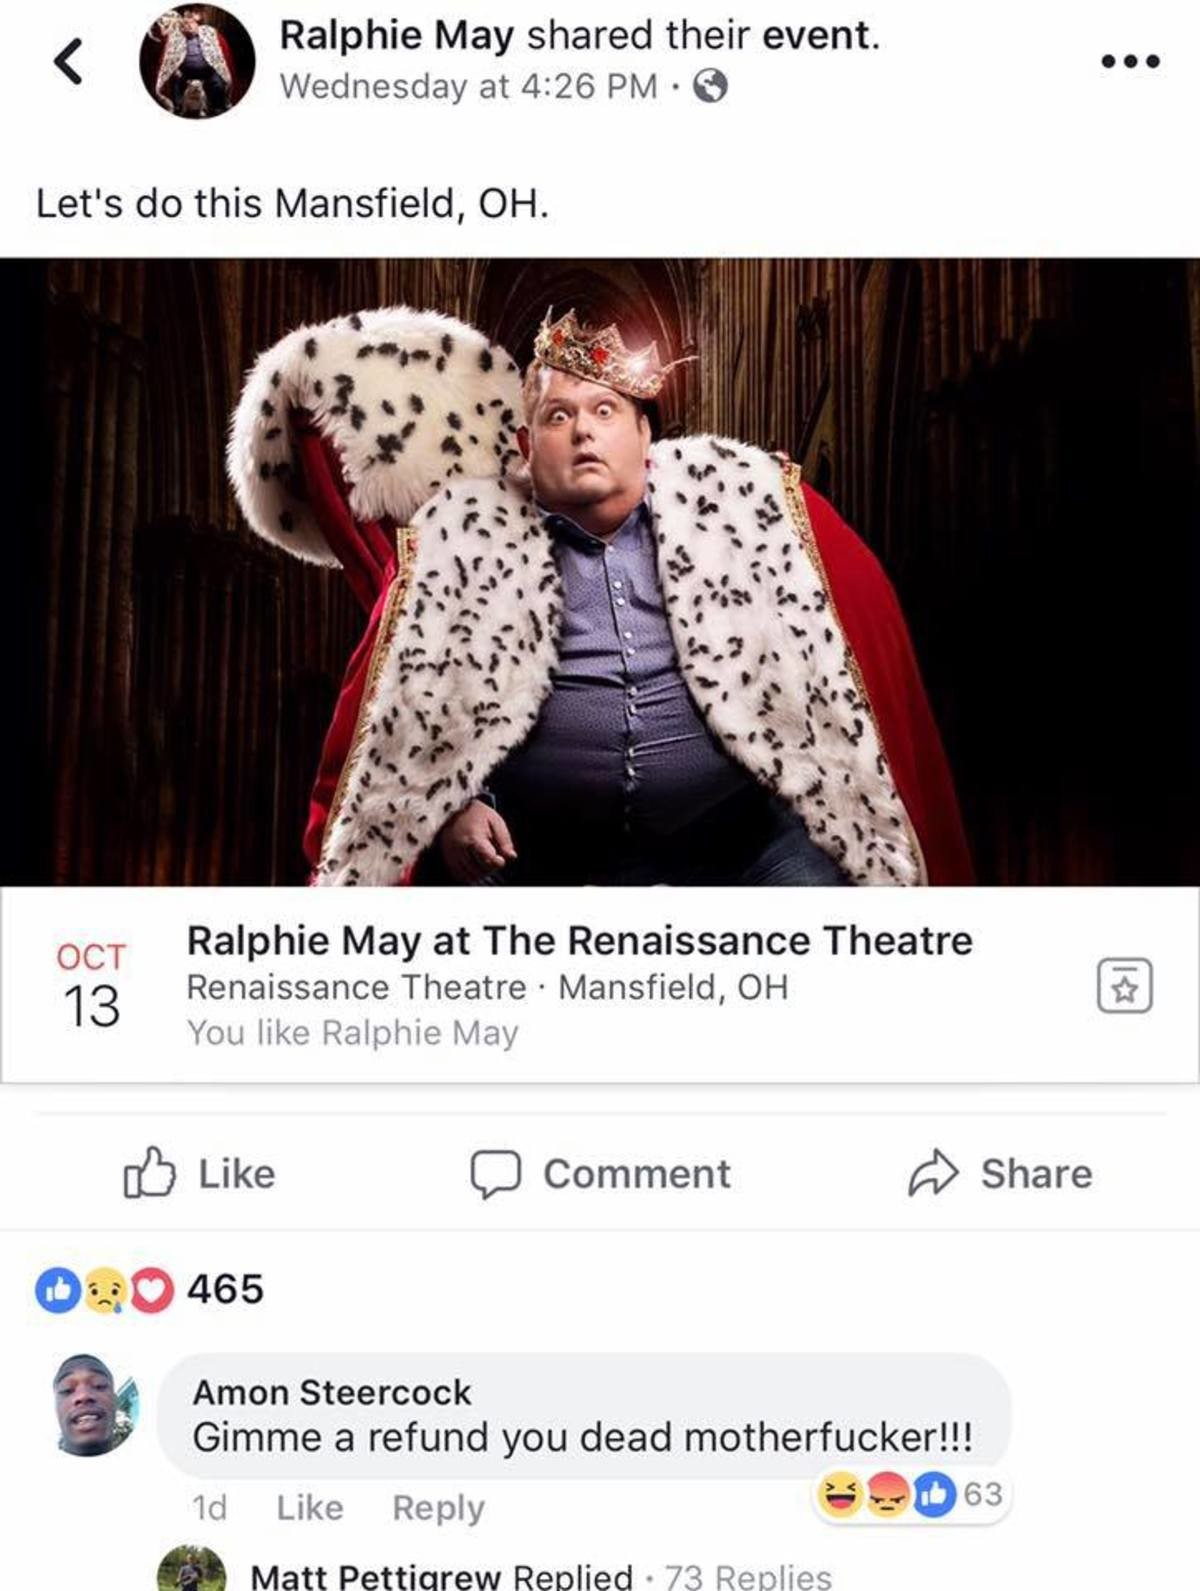 Givindi Vesespoct Wiec. . Ralphie May shared their event. OCT Ralphie May at The Renaissance Theatre 13 Renaissance Theatre . Mansfield, OH You like Ralphie May